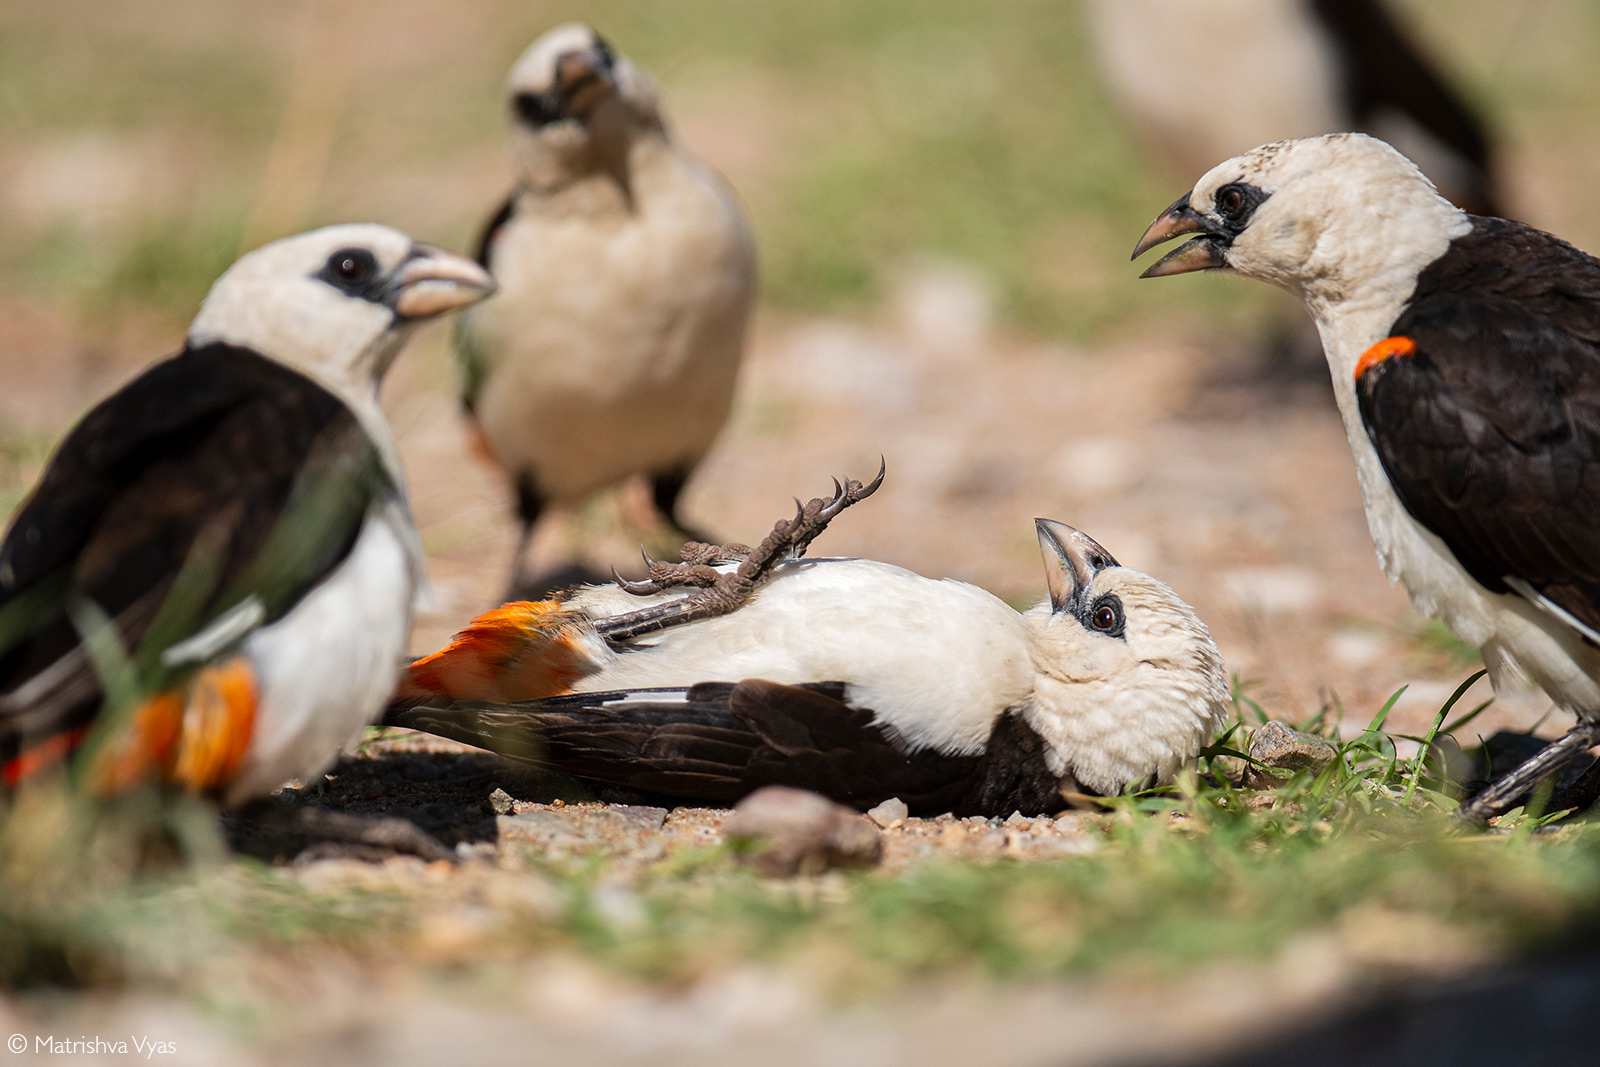 White-headed buffalo weaver lies in a defensive pose after a scuffle amongst the flock. Serengeti National Park, Tanzania © Matrishva Vyas